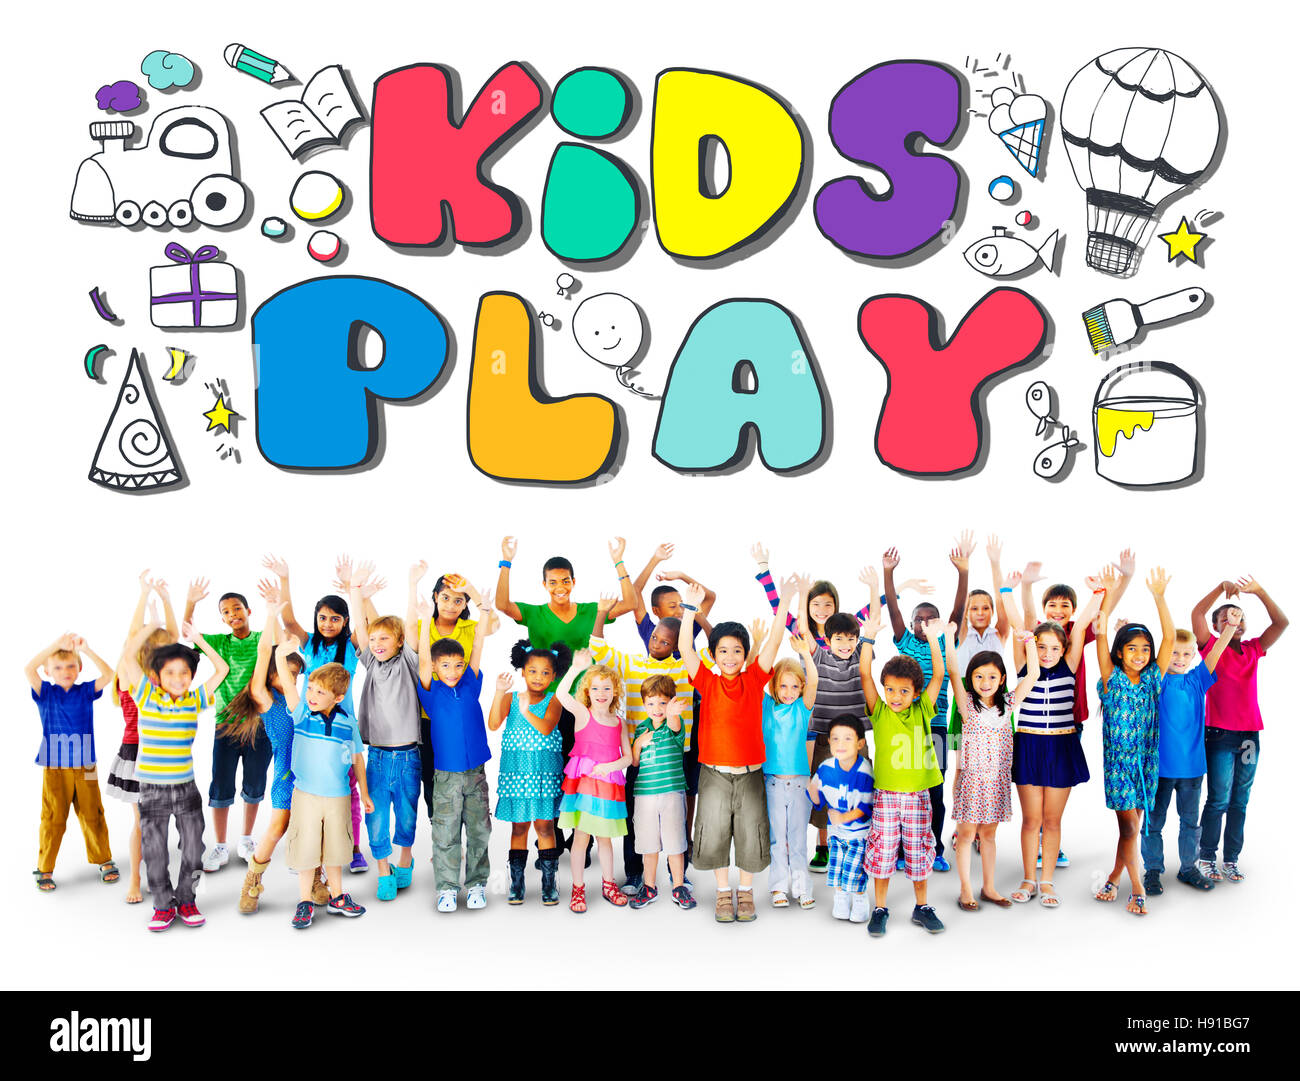 Kids Play Imagination Hobbies Leisure Games Concept - Stock Image